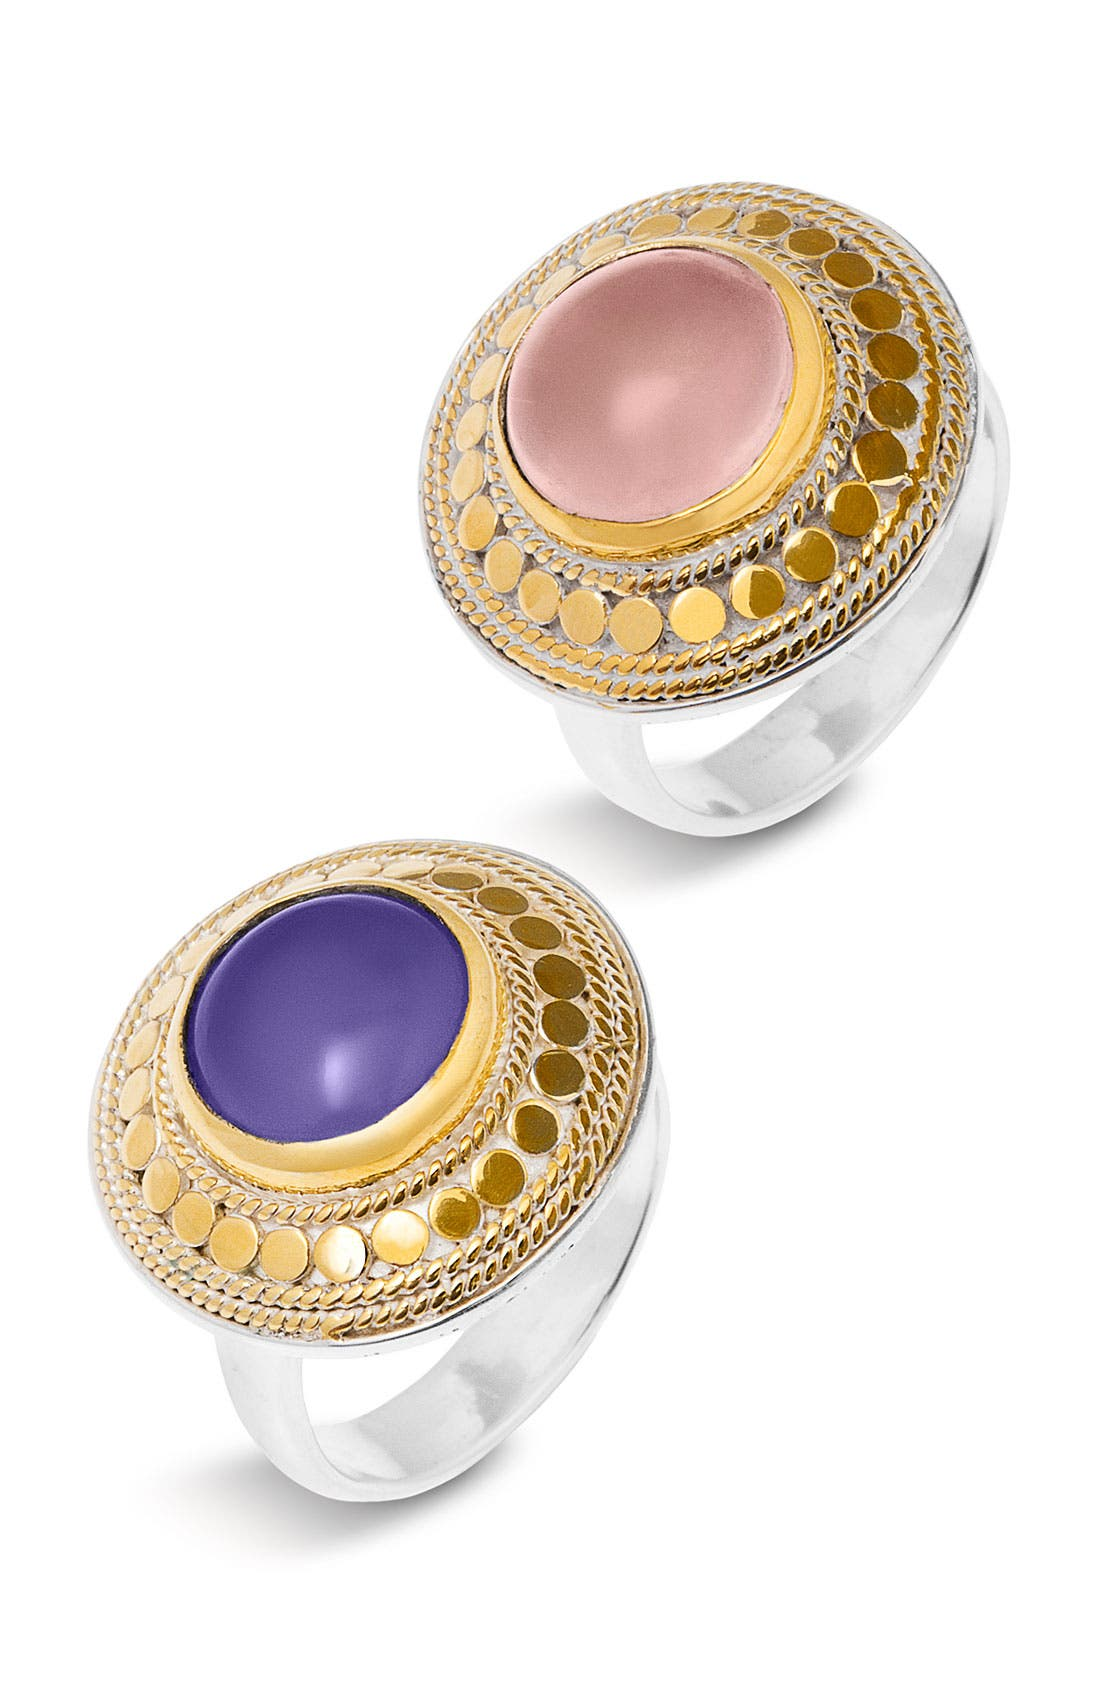 Main Image - Anna Beck 'Gili Stone' Small Round Ring